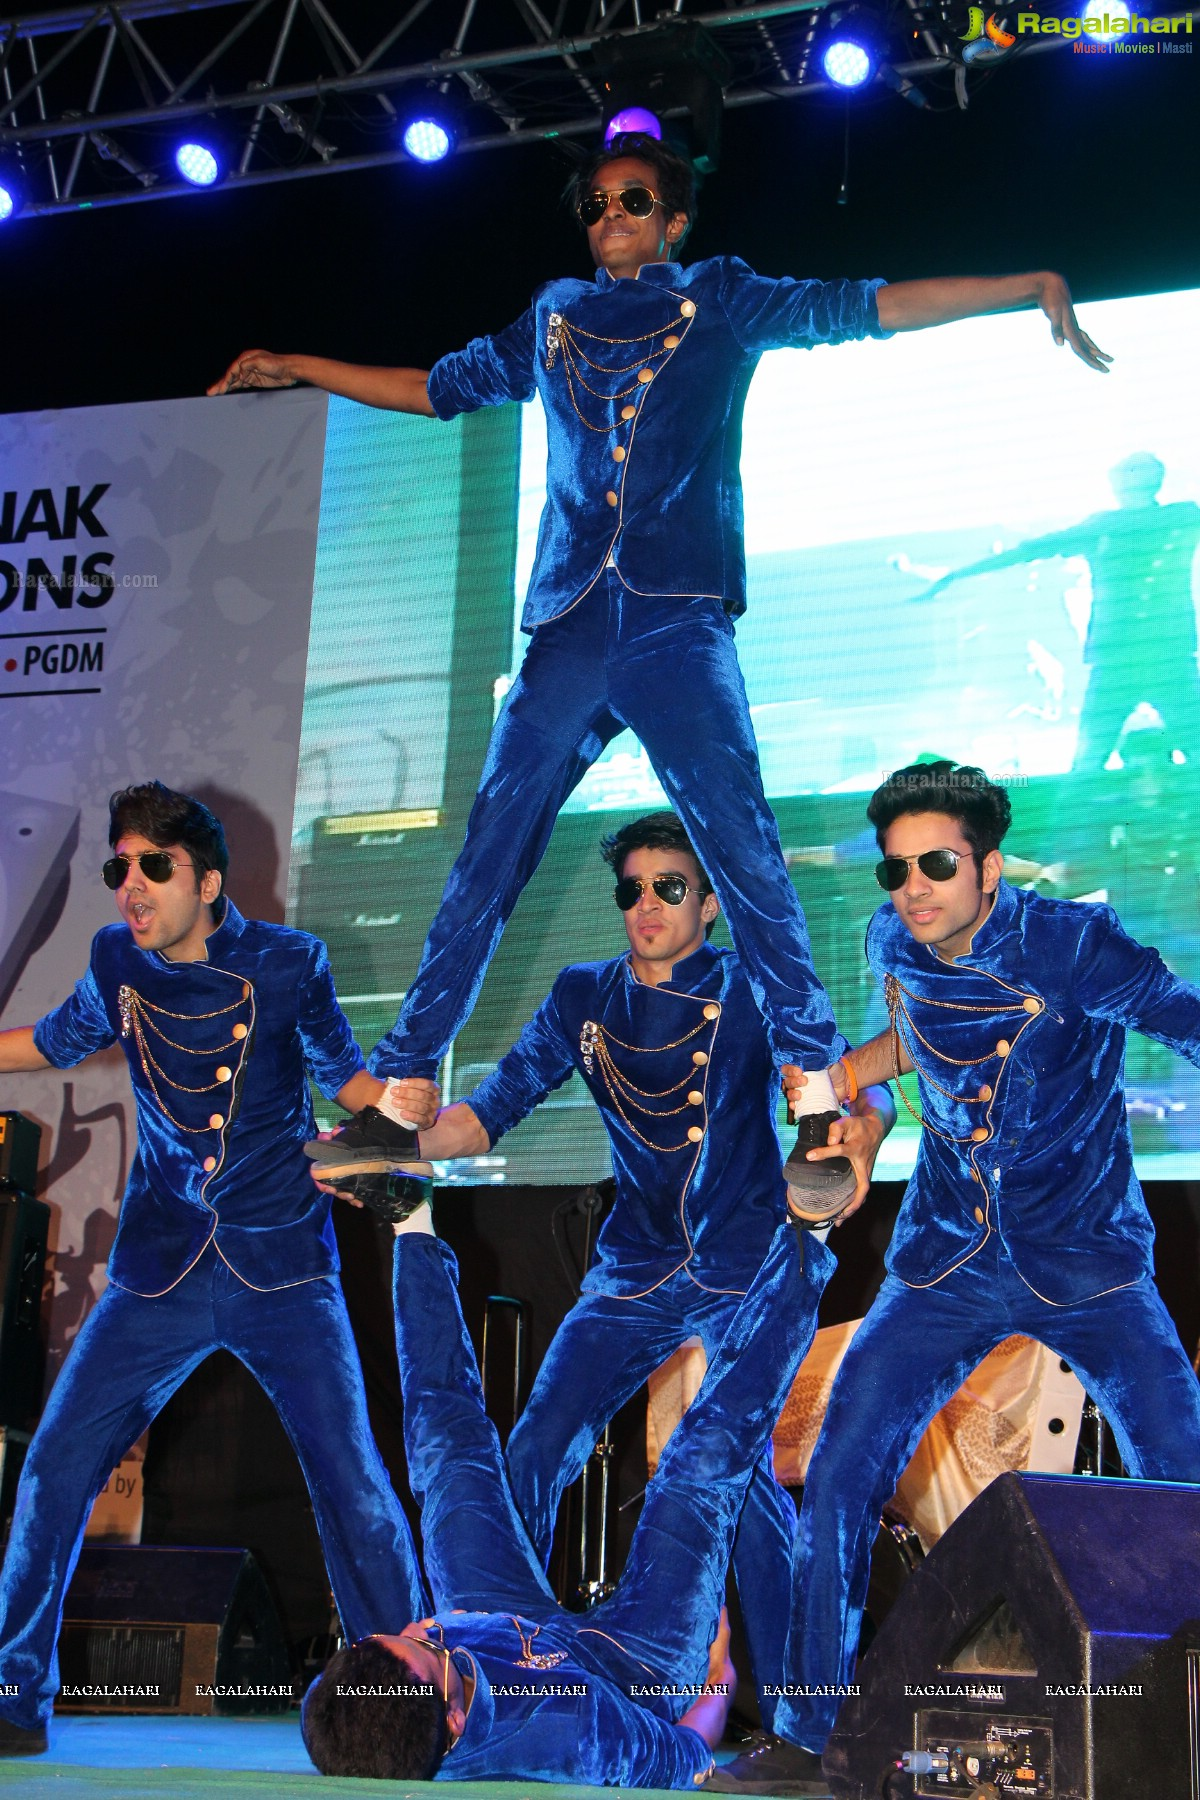 Exclusive Coverage: Live Wire 2K14 at Guru Nanak Institutions ...